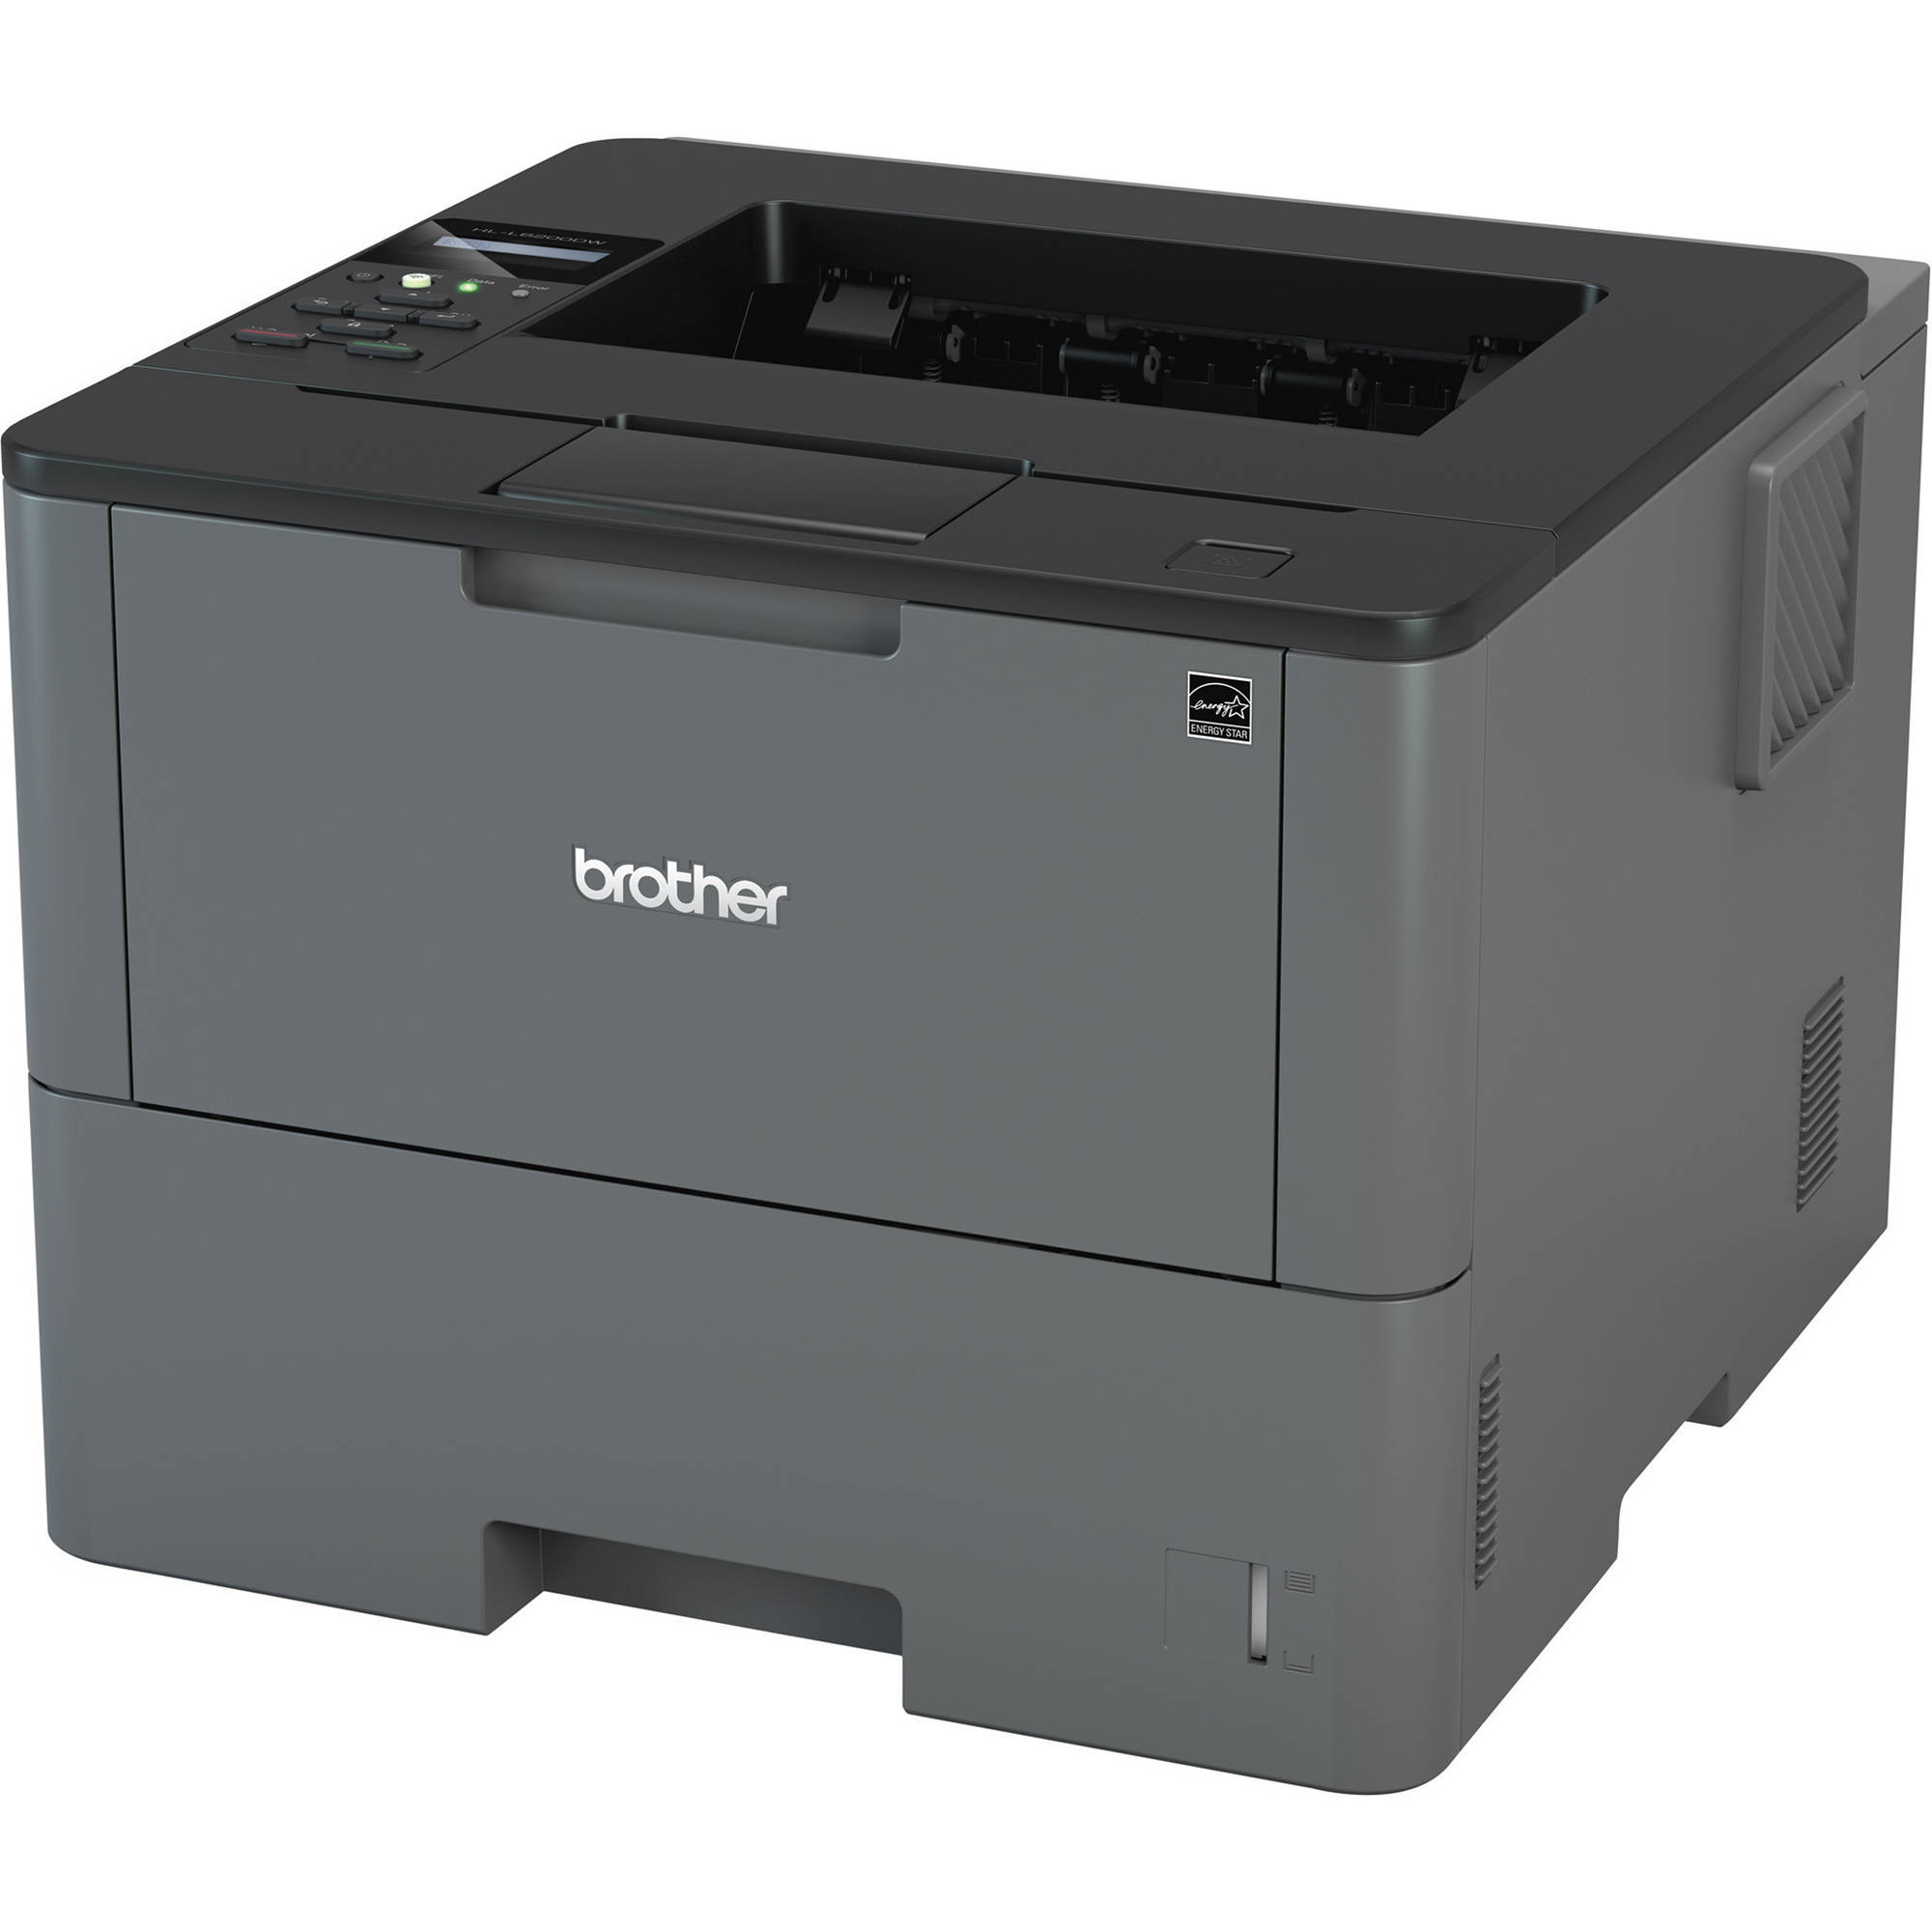 Brother HL-4570CDWT Universal Printer Driver Download